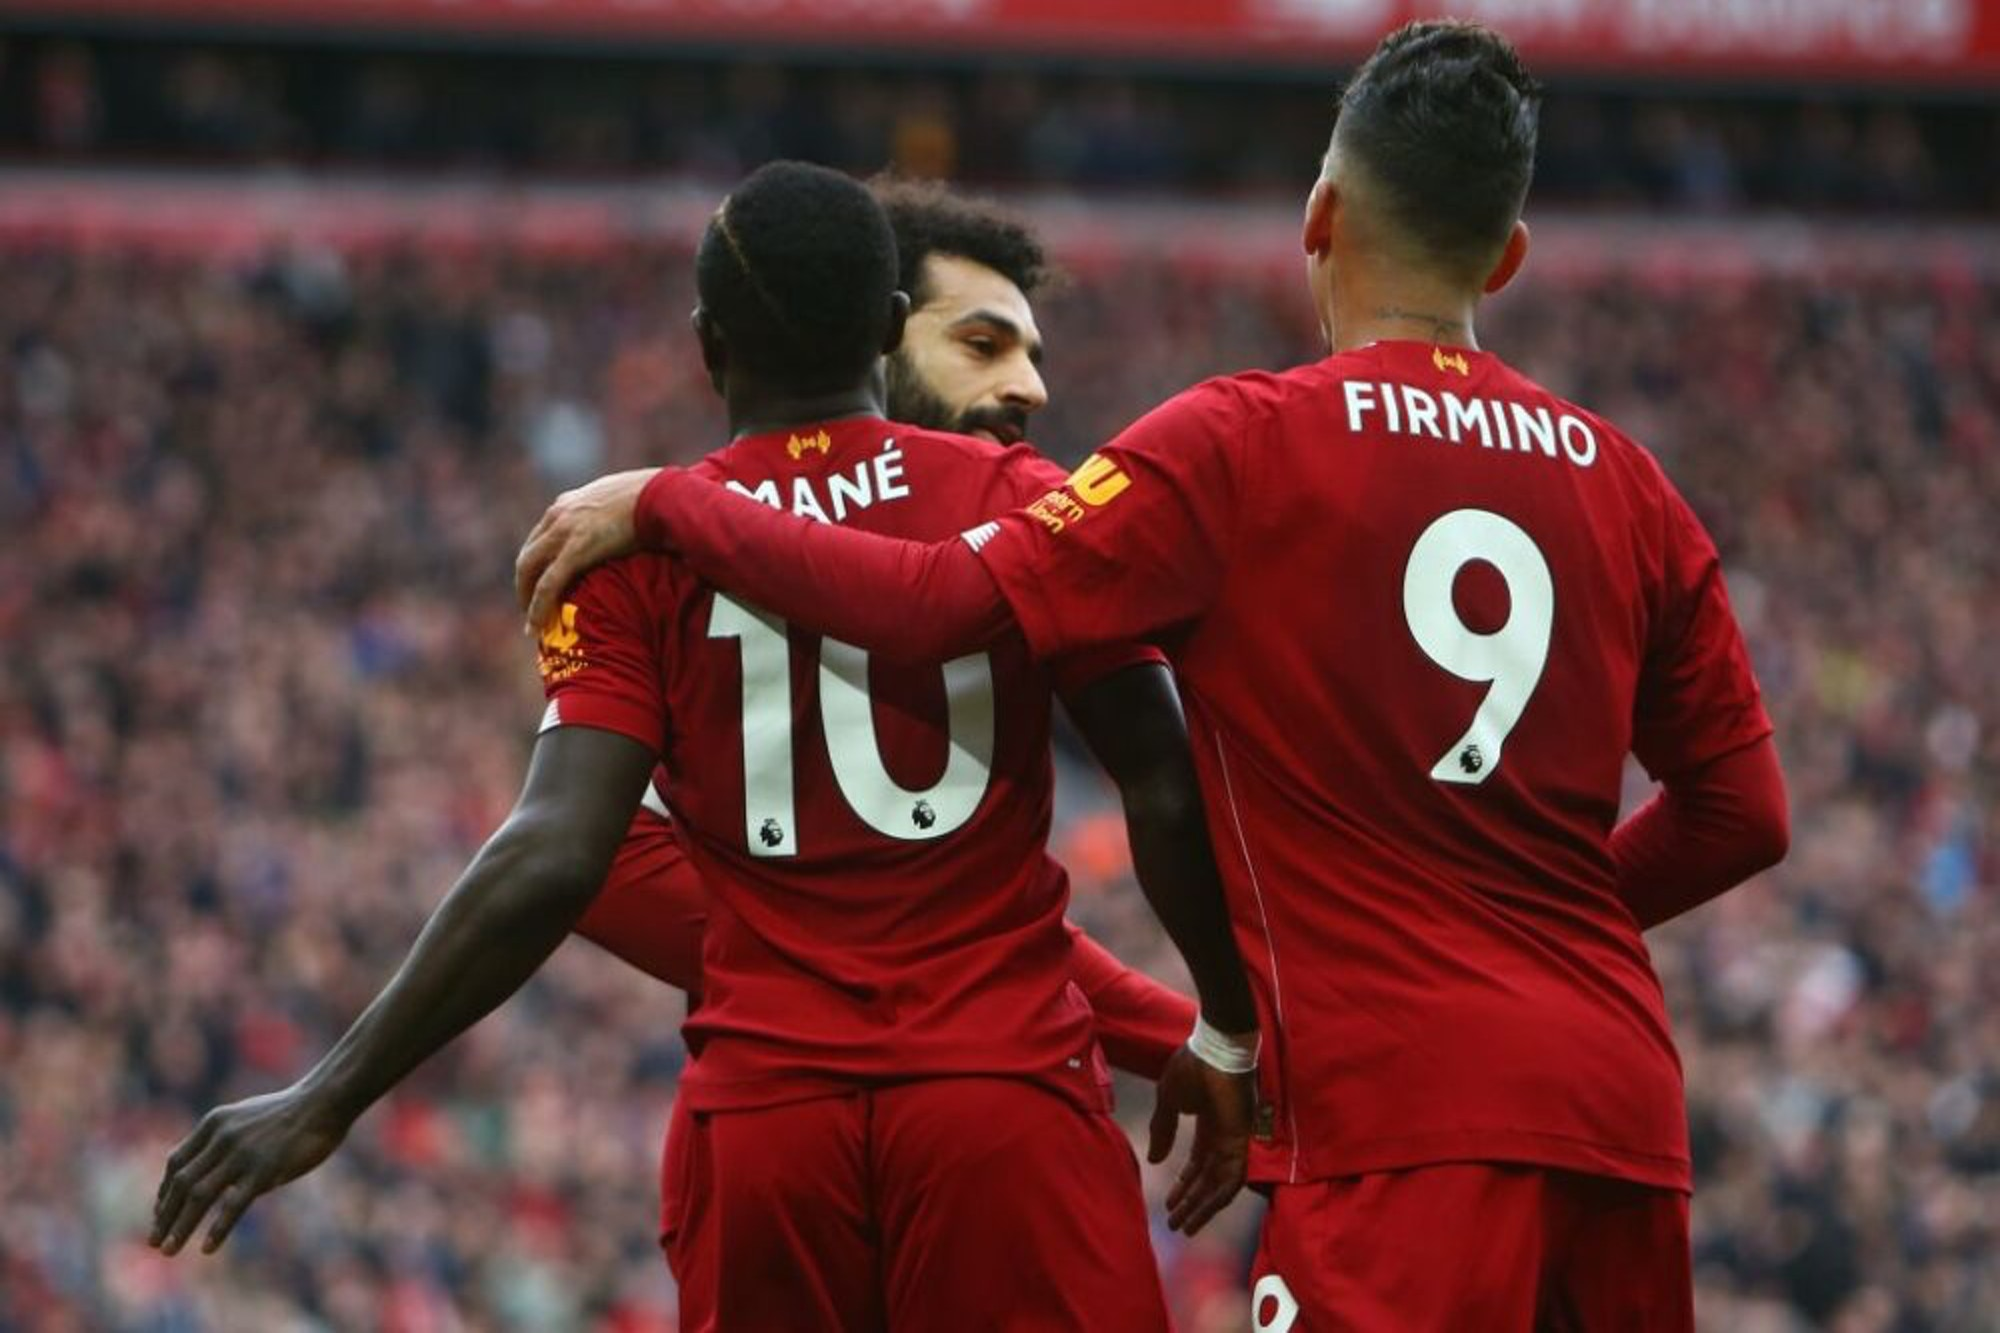 https___wp-images.onefootball.com_wp-content_uploads_sites_10_2020_05_FBL-ENG-PR-LIVERPOOL-BOURNEMOUTH-1589988677-1000x667.jpg